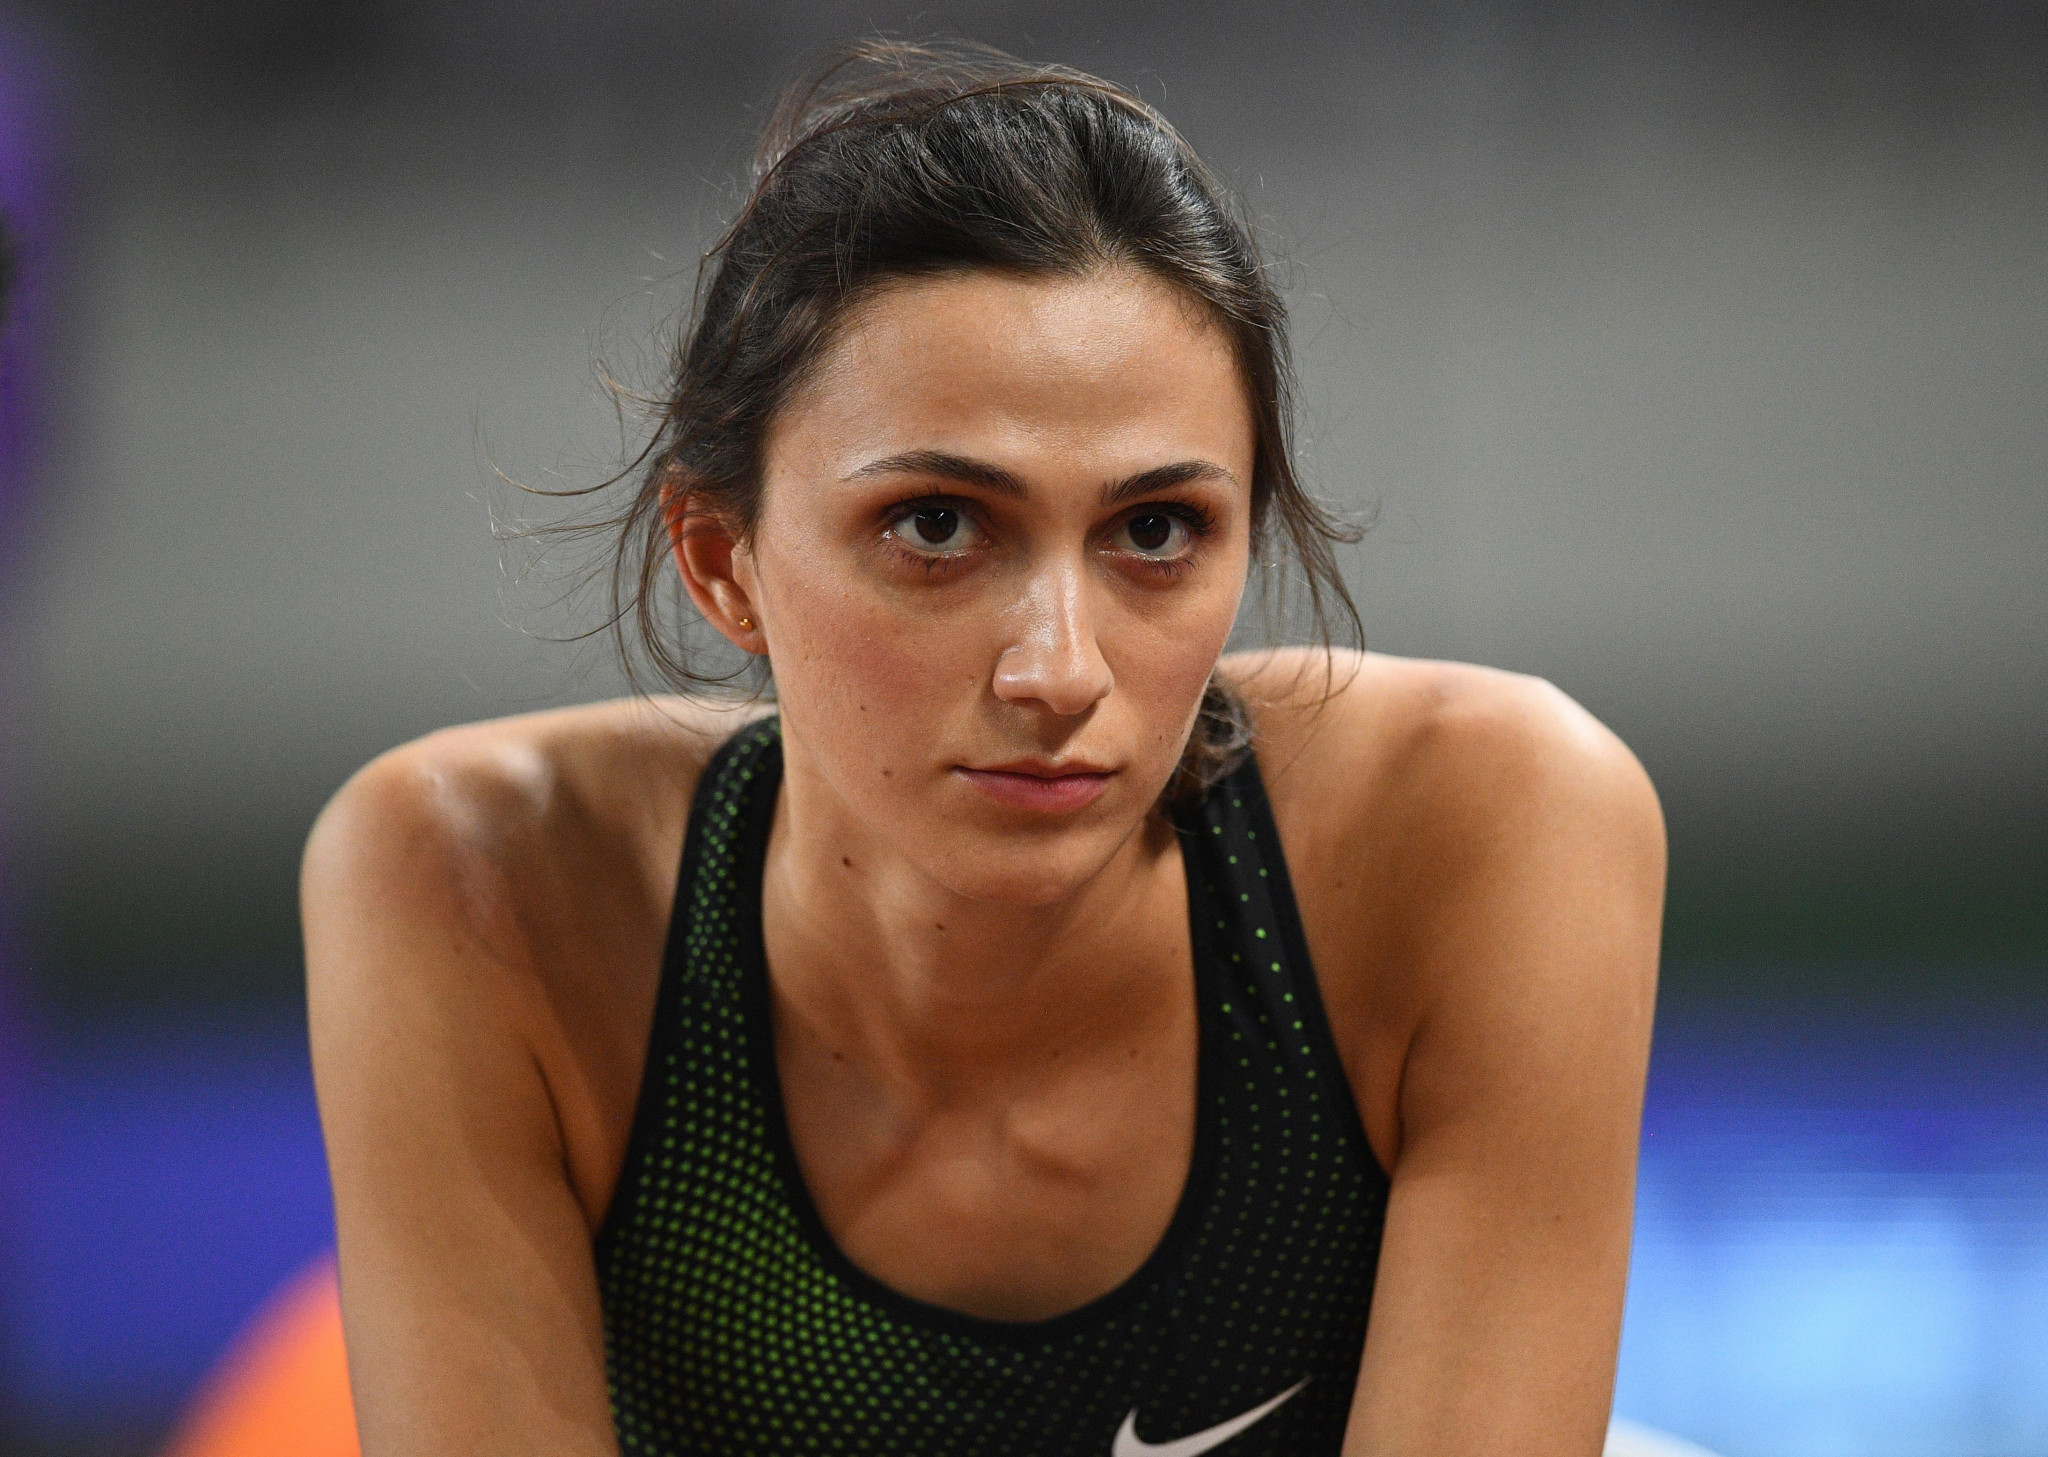 Double world high jump champion Maria Lasitskene has called for a change at the Russian Athletics Federation after its suspension was extended for an 11th time by the IAAF ©Getty Images